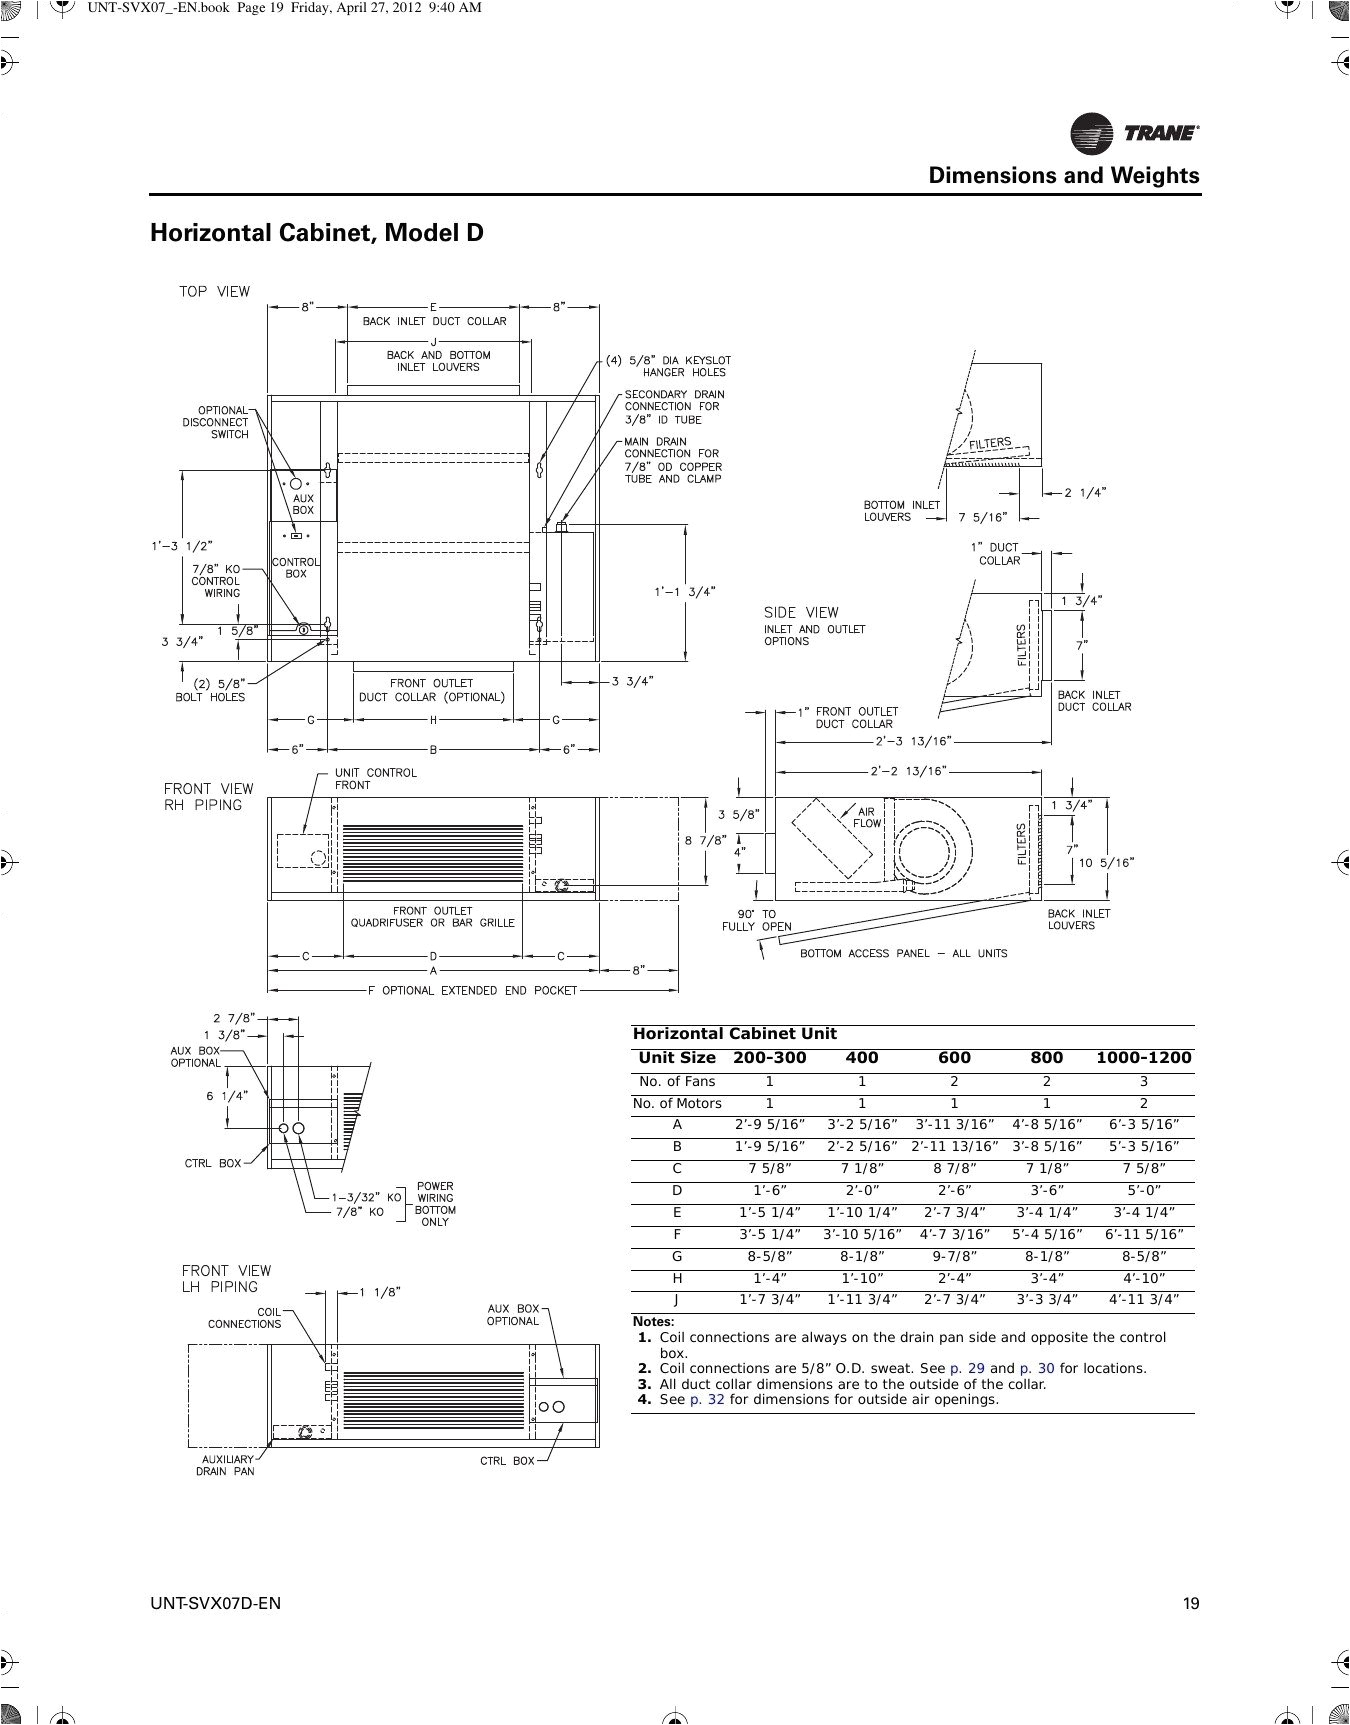 Wiring Diagram for Hot Tub Heater Wiring Diagram for Electric Heat Unit Get Free Image About Wiring